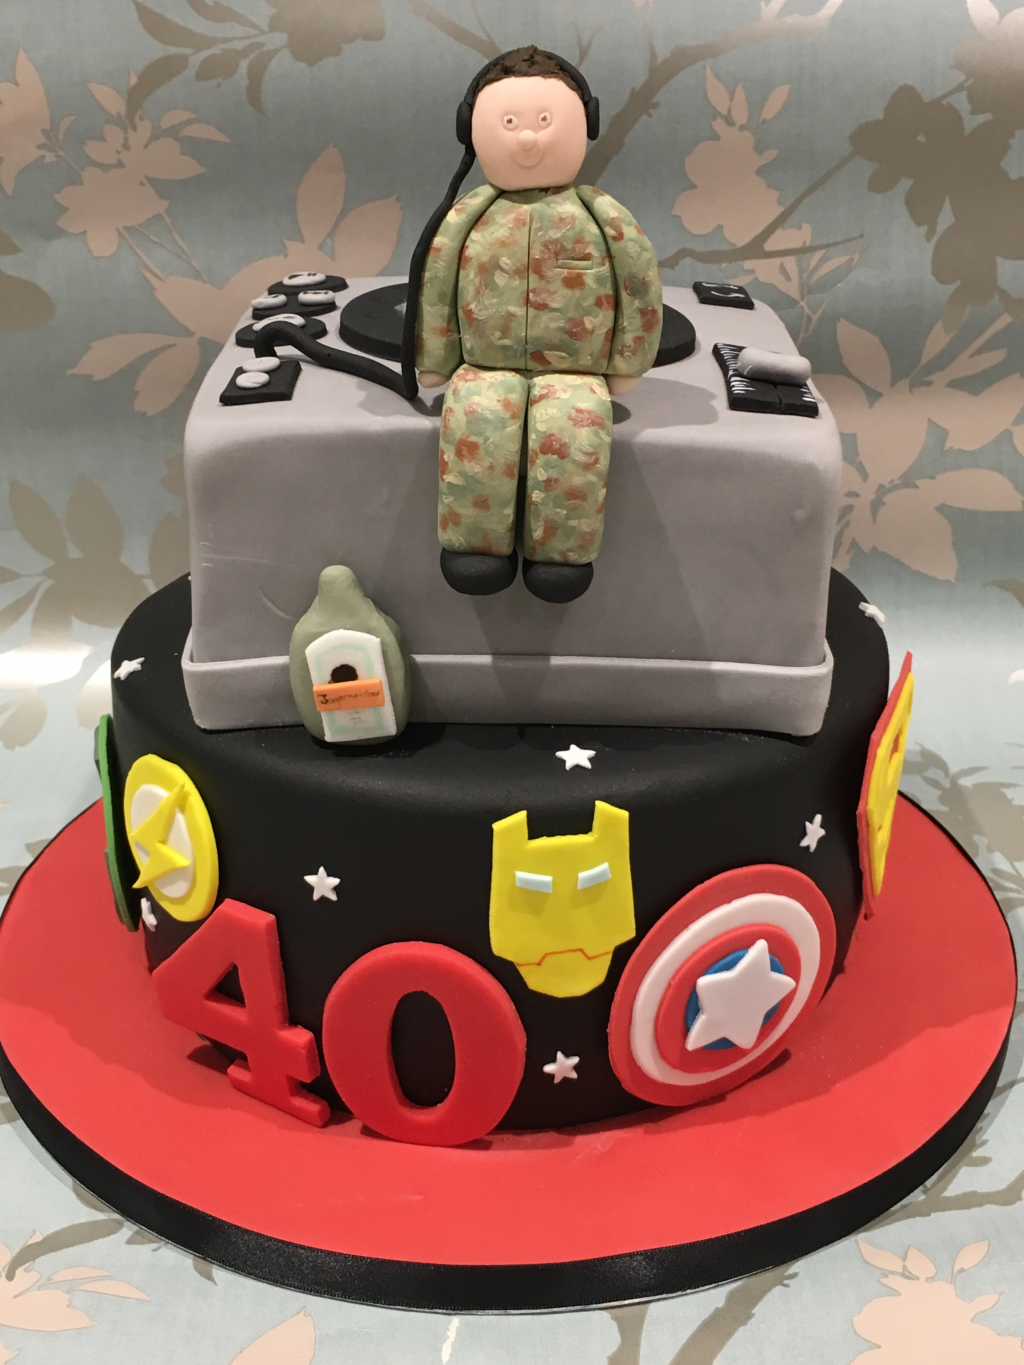 Soldier-record-decks-and-superhero-cake